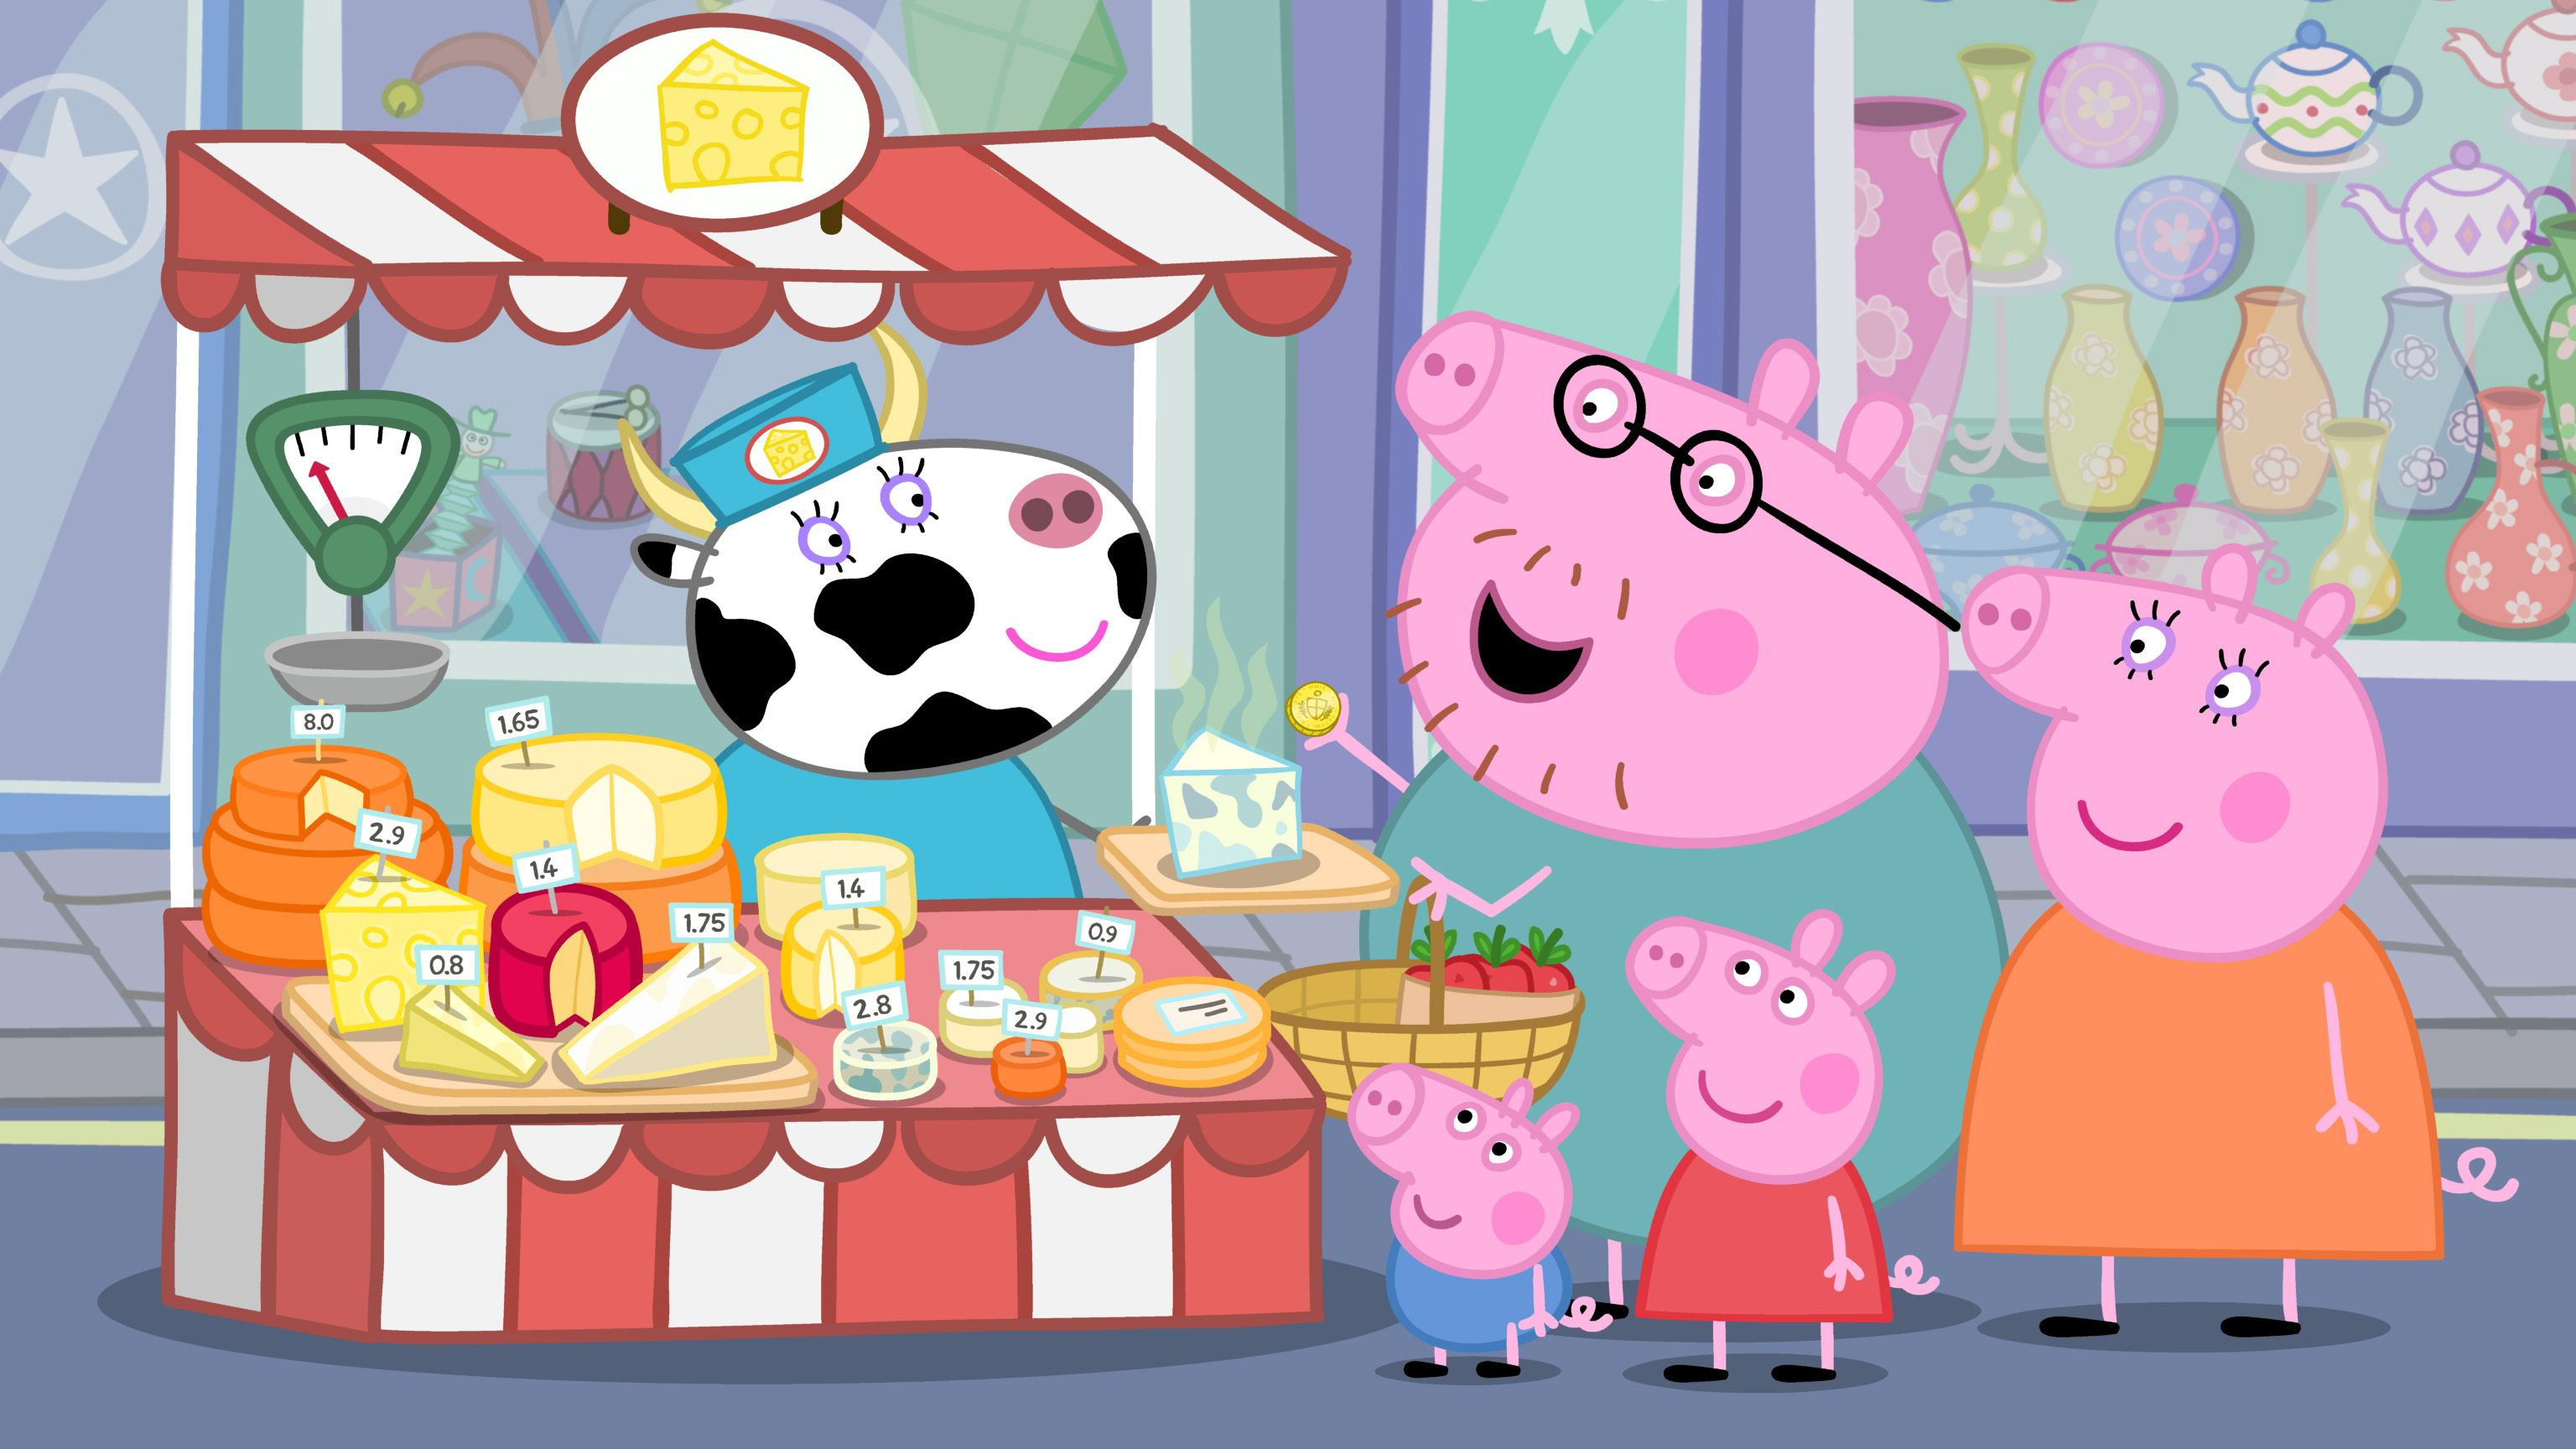 Peppa Pig Meets A Superhero In New Nickelodeon Episodes This May